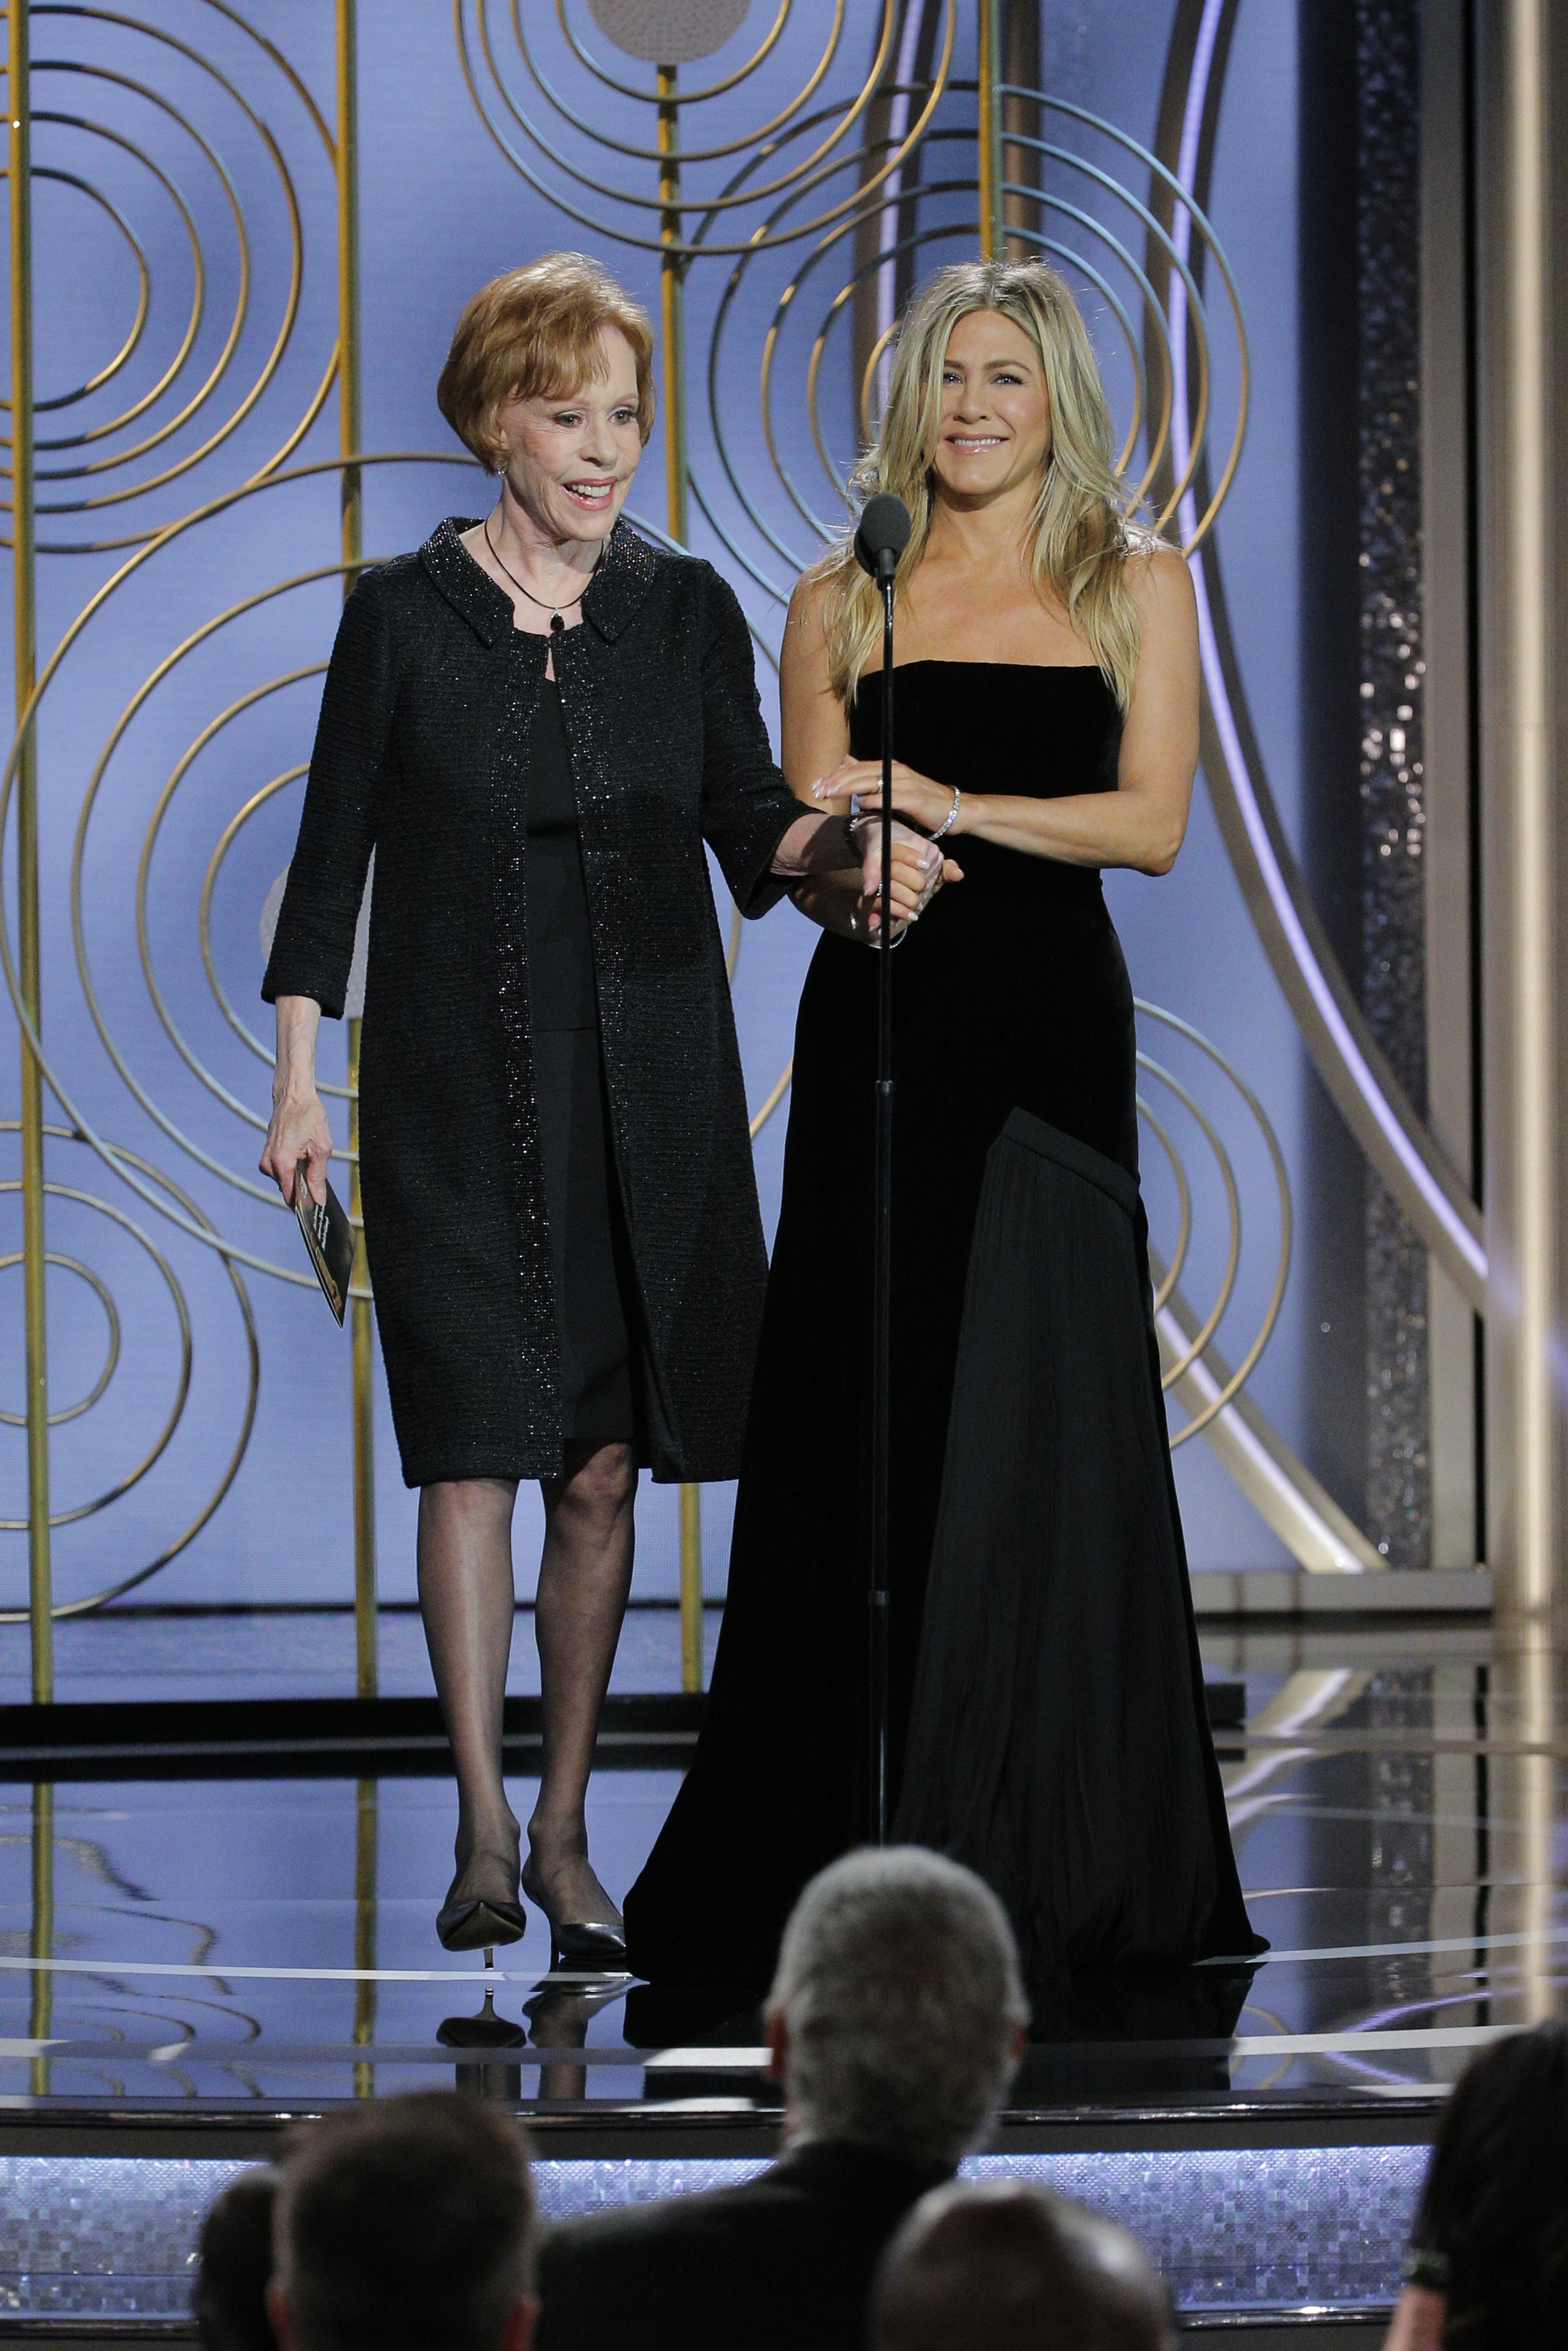 Presenters Carol Burnett and Jennifer Aniston appear on stage during the 75th Annual Golden Globe Awards on Jan. 7, 2018.